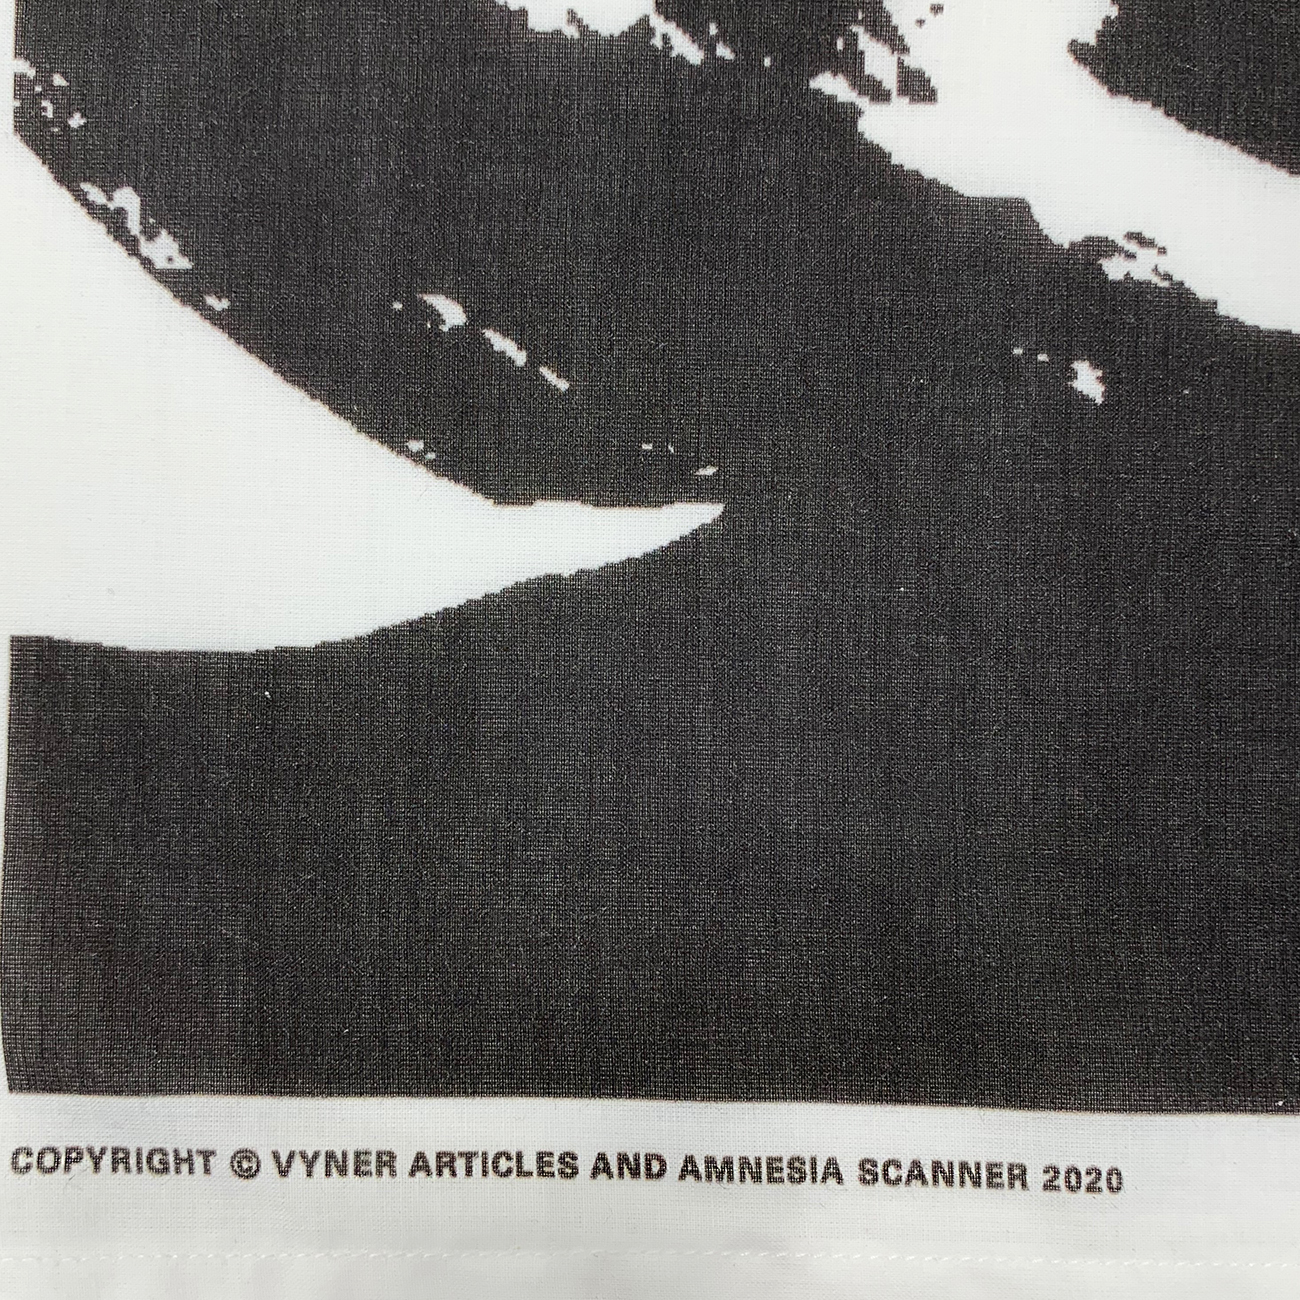 VYNER ARTICLES (ヴァイナー アーティクルズ) - VYNER ARTICLES AMNESIA SCANNER COLLABORATION BANDANA[LIFE] WHITEの詳細画像2